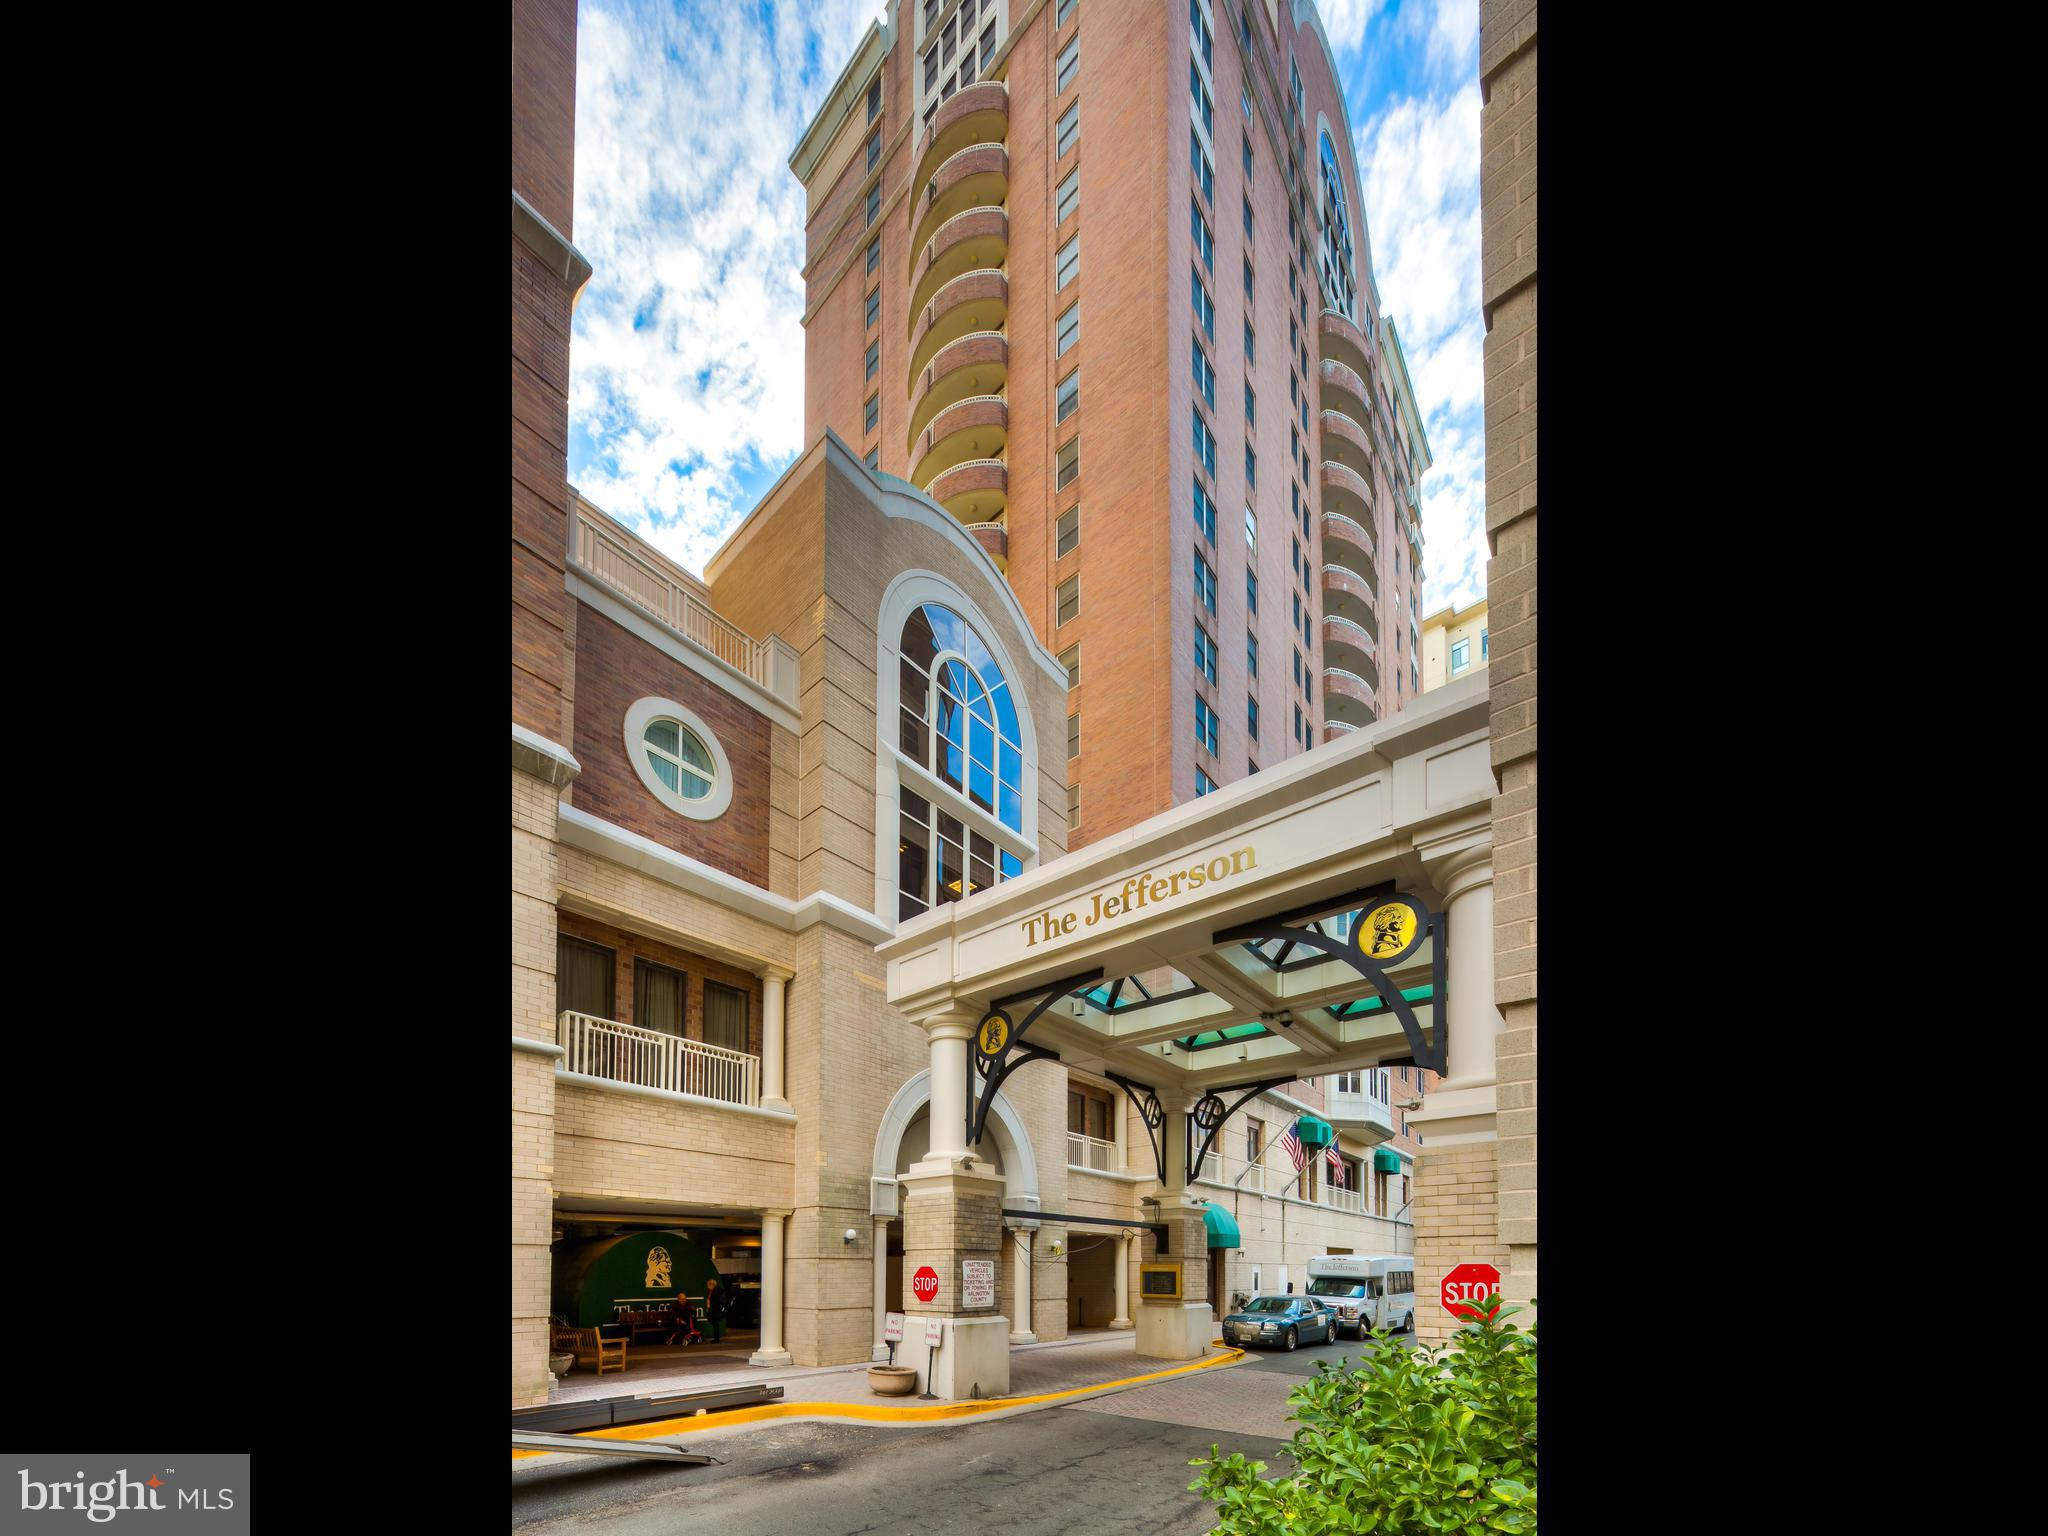 55 + Independent Living Retirement Community. Amenities fee of $3,205/month includes 30 fine dining meals, weekly housekeeping, weekly linen service, transportation and more. One block from Ballston Metro. Enjoy vibrant activity filled days and wind down in your private lovely condo complete with full kitchen and washer and dryer.